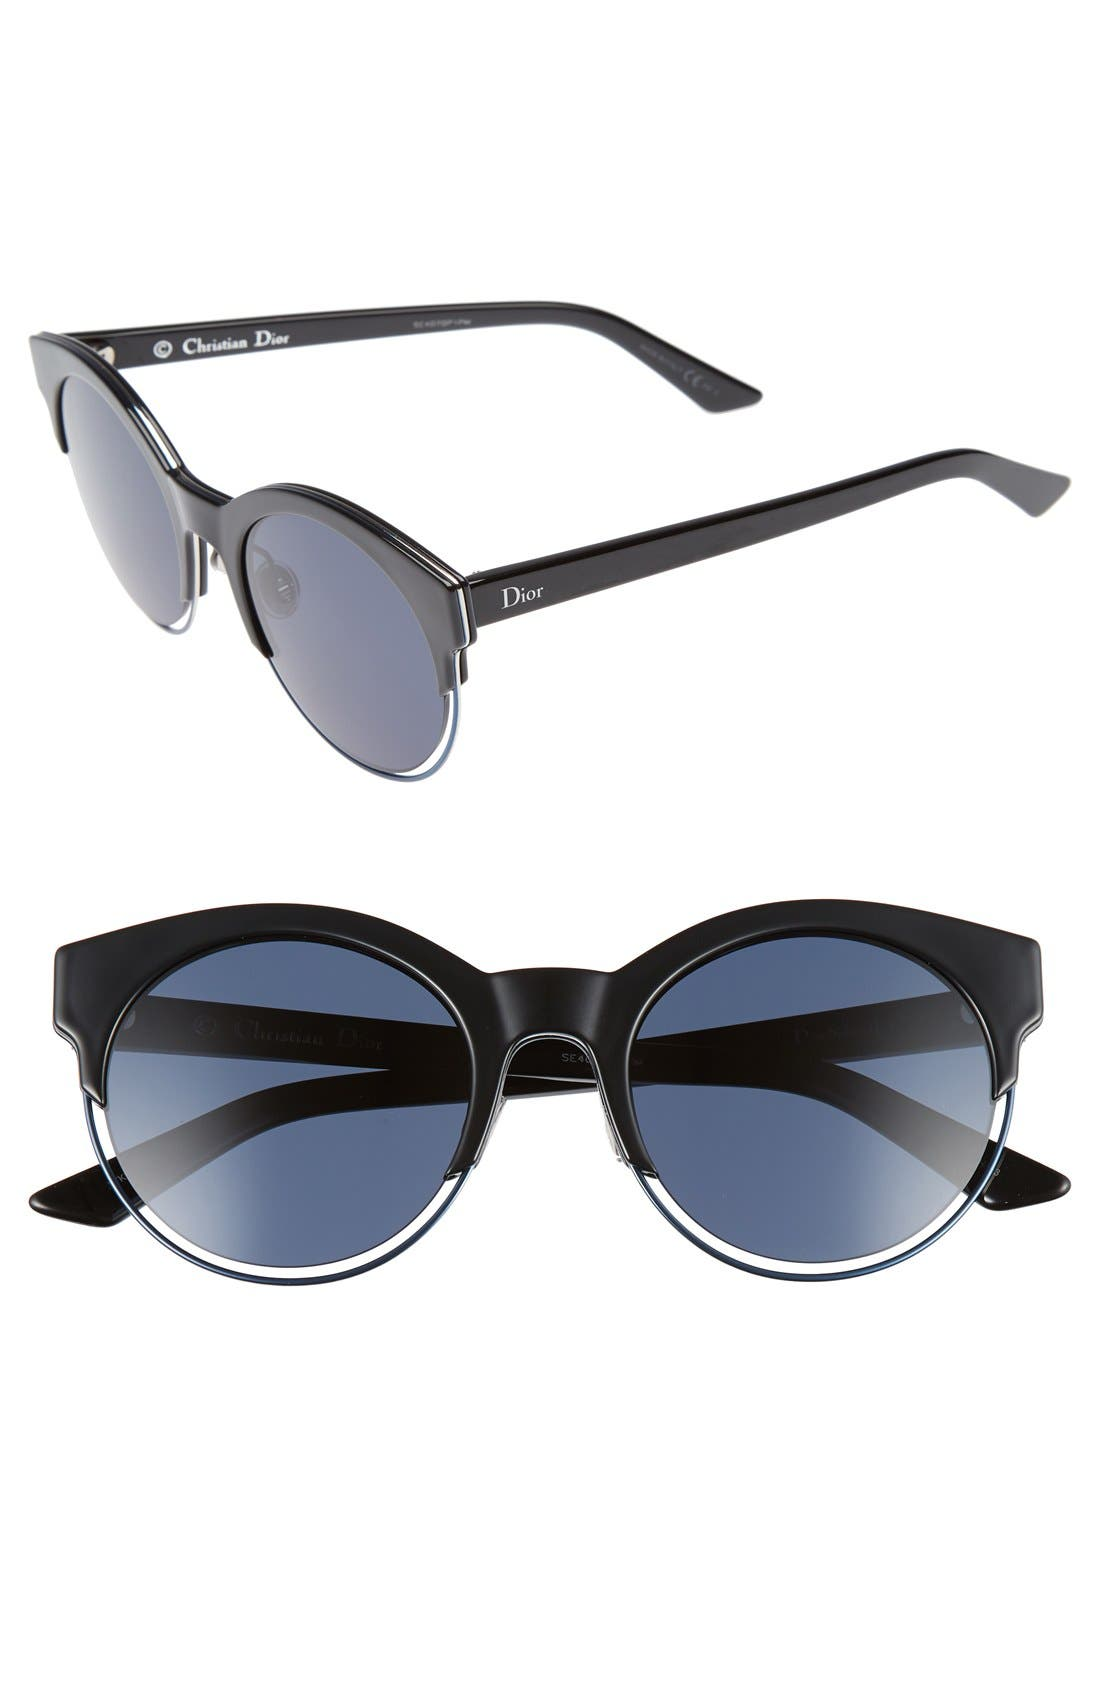 Siderall 1 53mm Round Sunglasses,                         Main,                         color, Black/ Blue